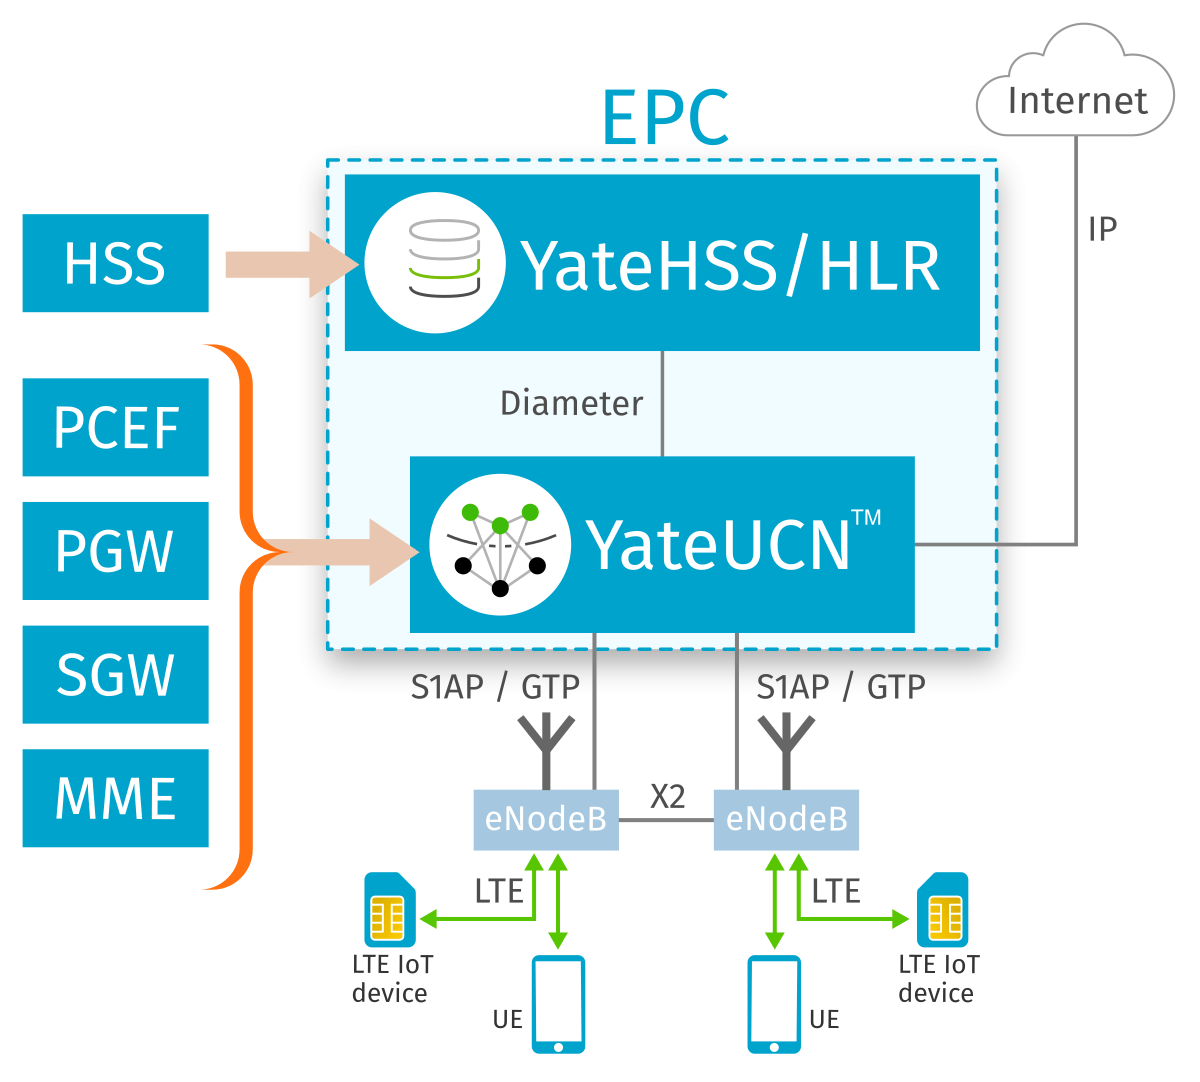 Yate LTE EPC diagram